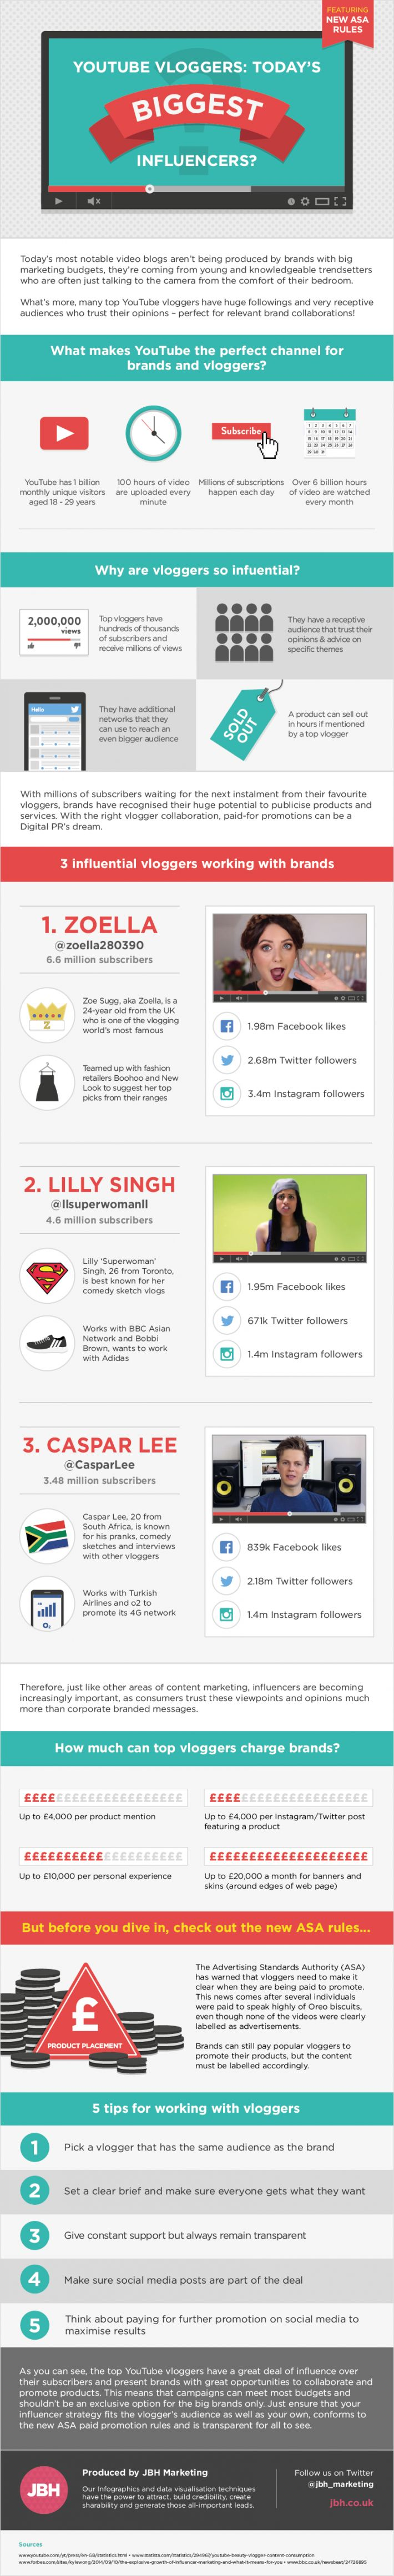 Youtube Vlloggers: Today's Biggest Influencers